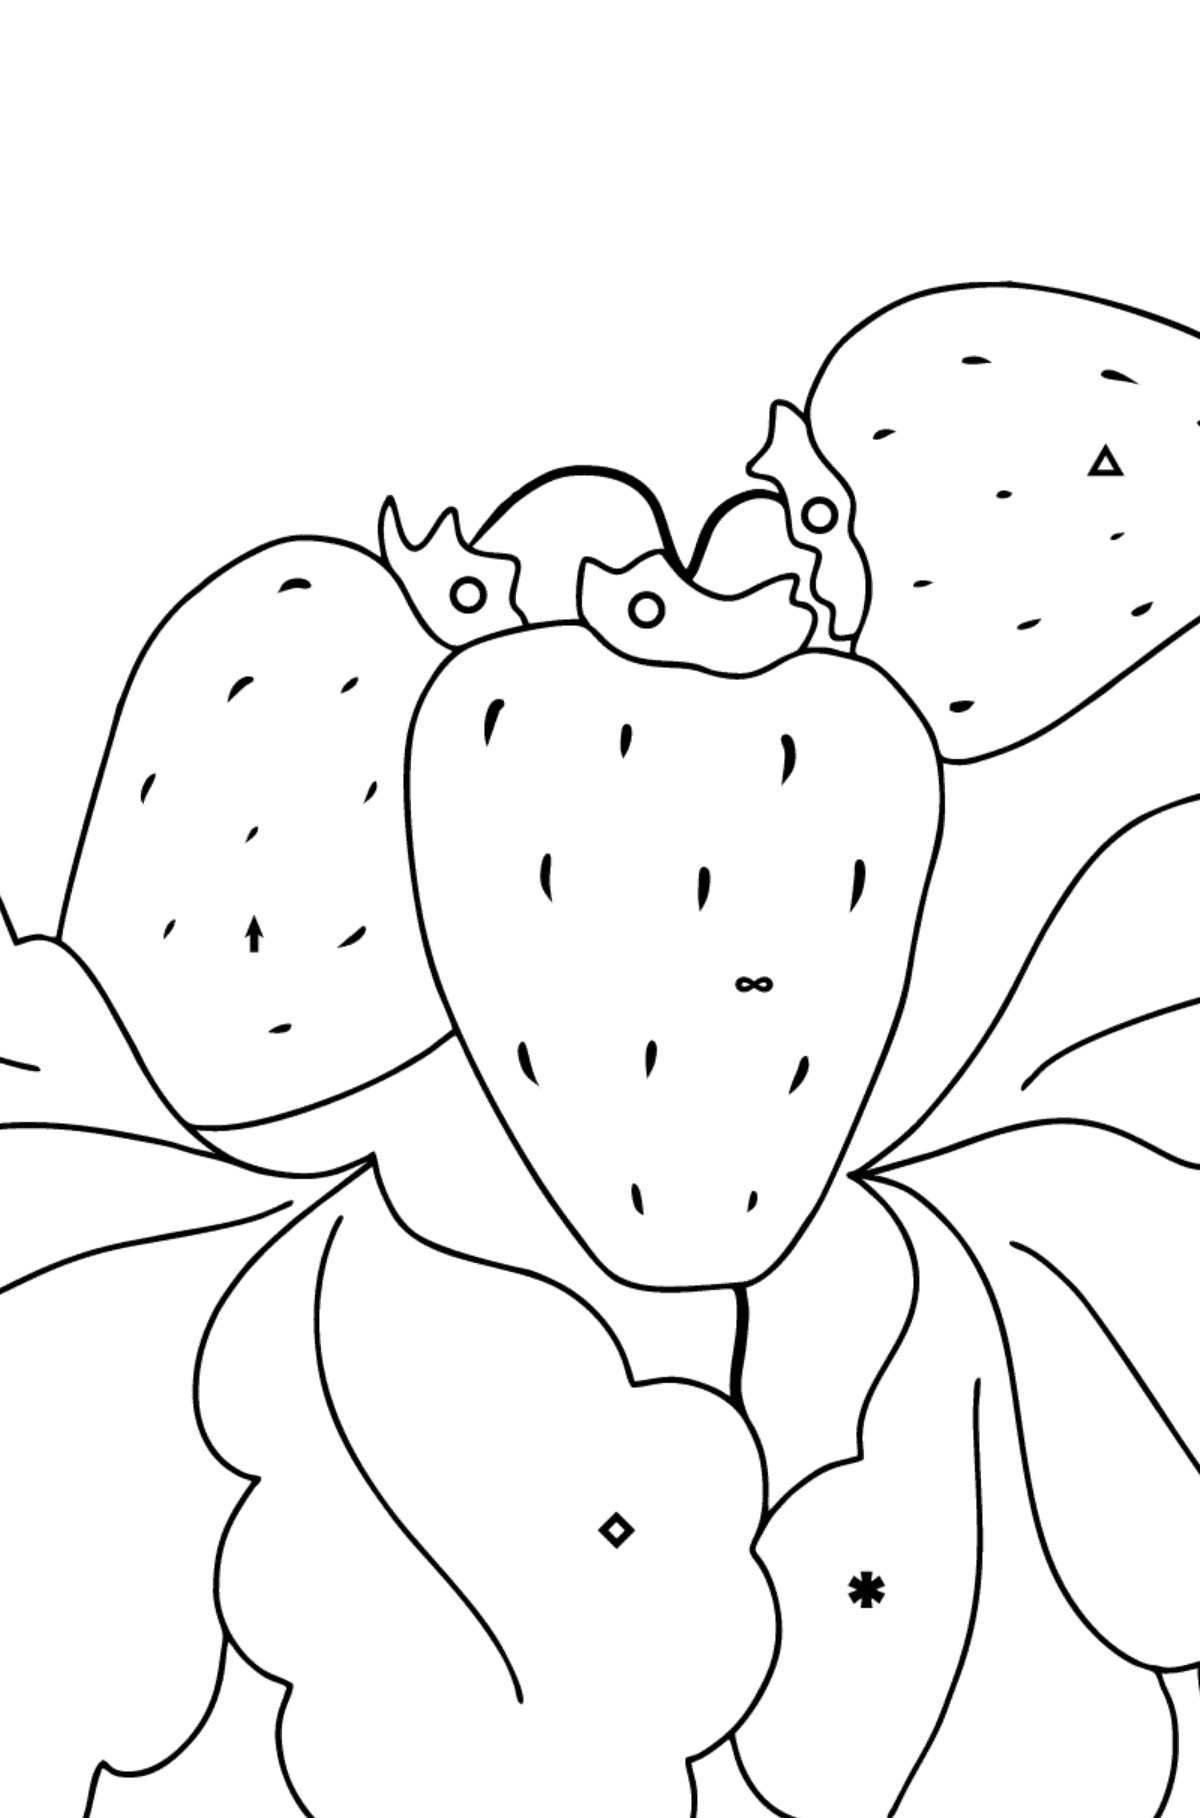 Coloring Page - Summer and Strawberries - Coloring by Symbols and Geometric Shapes for Kids